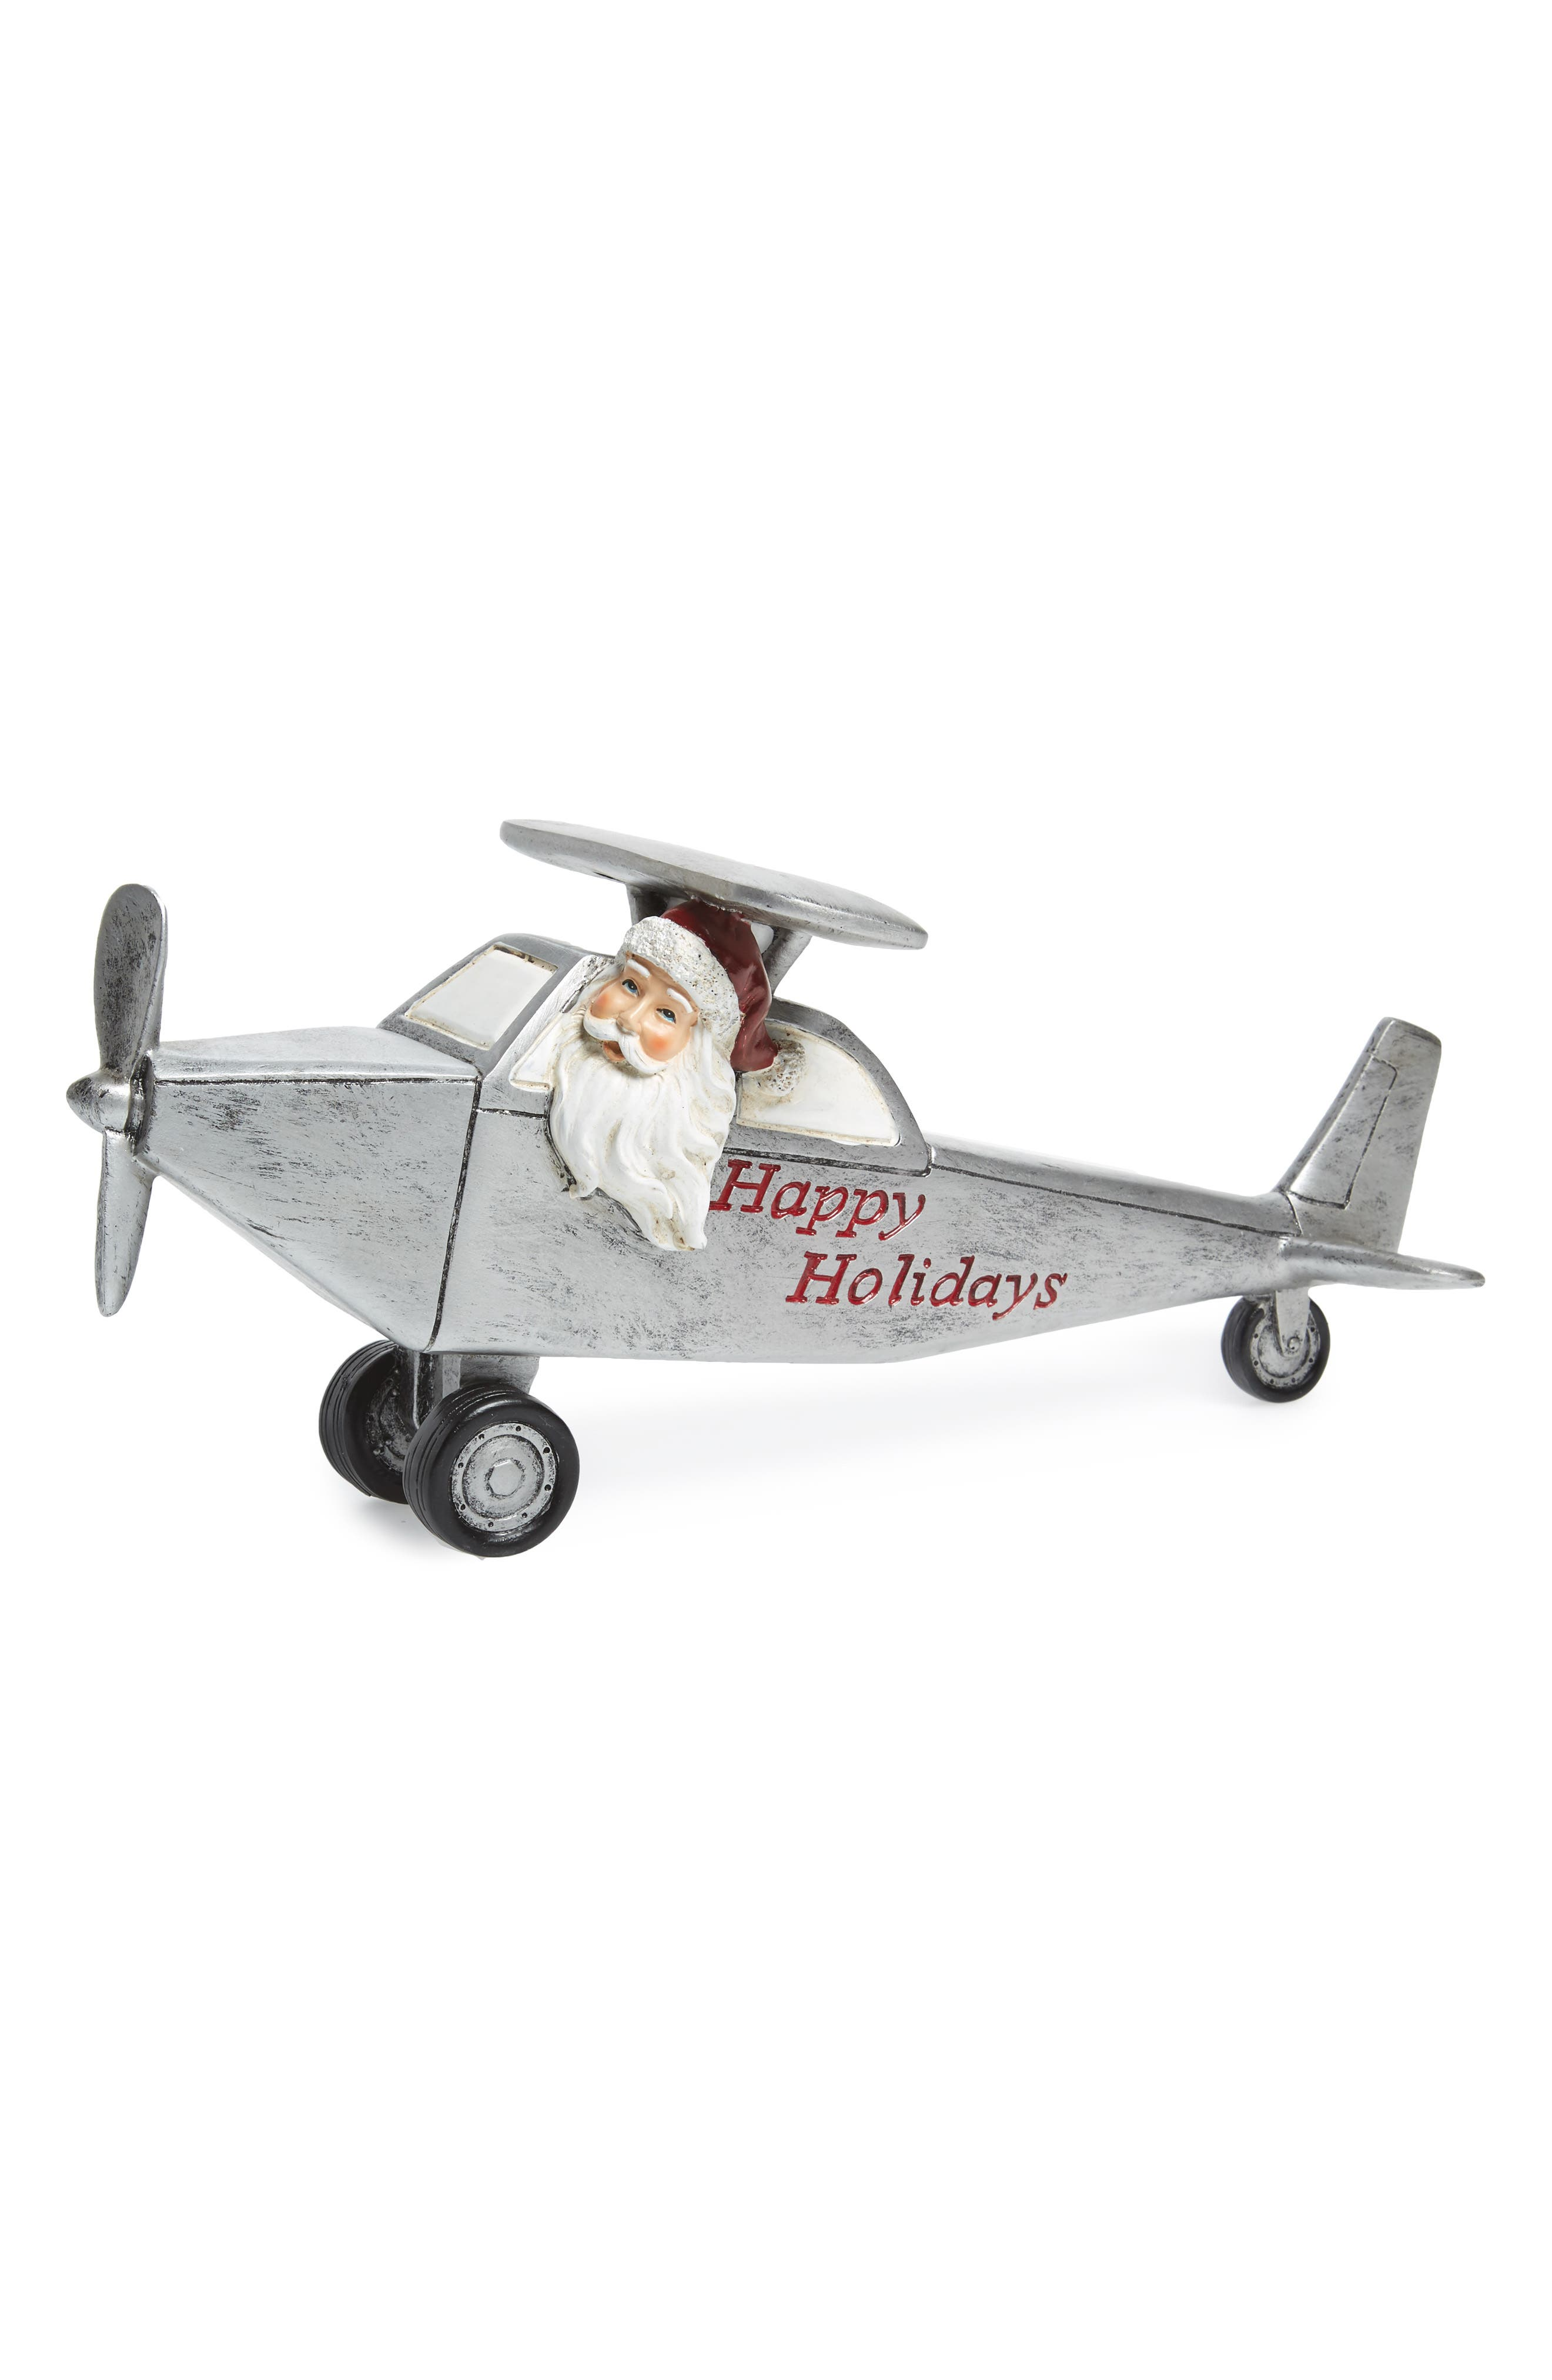 Santa Airplane Ornament,                         Main,                         color, Silver